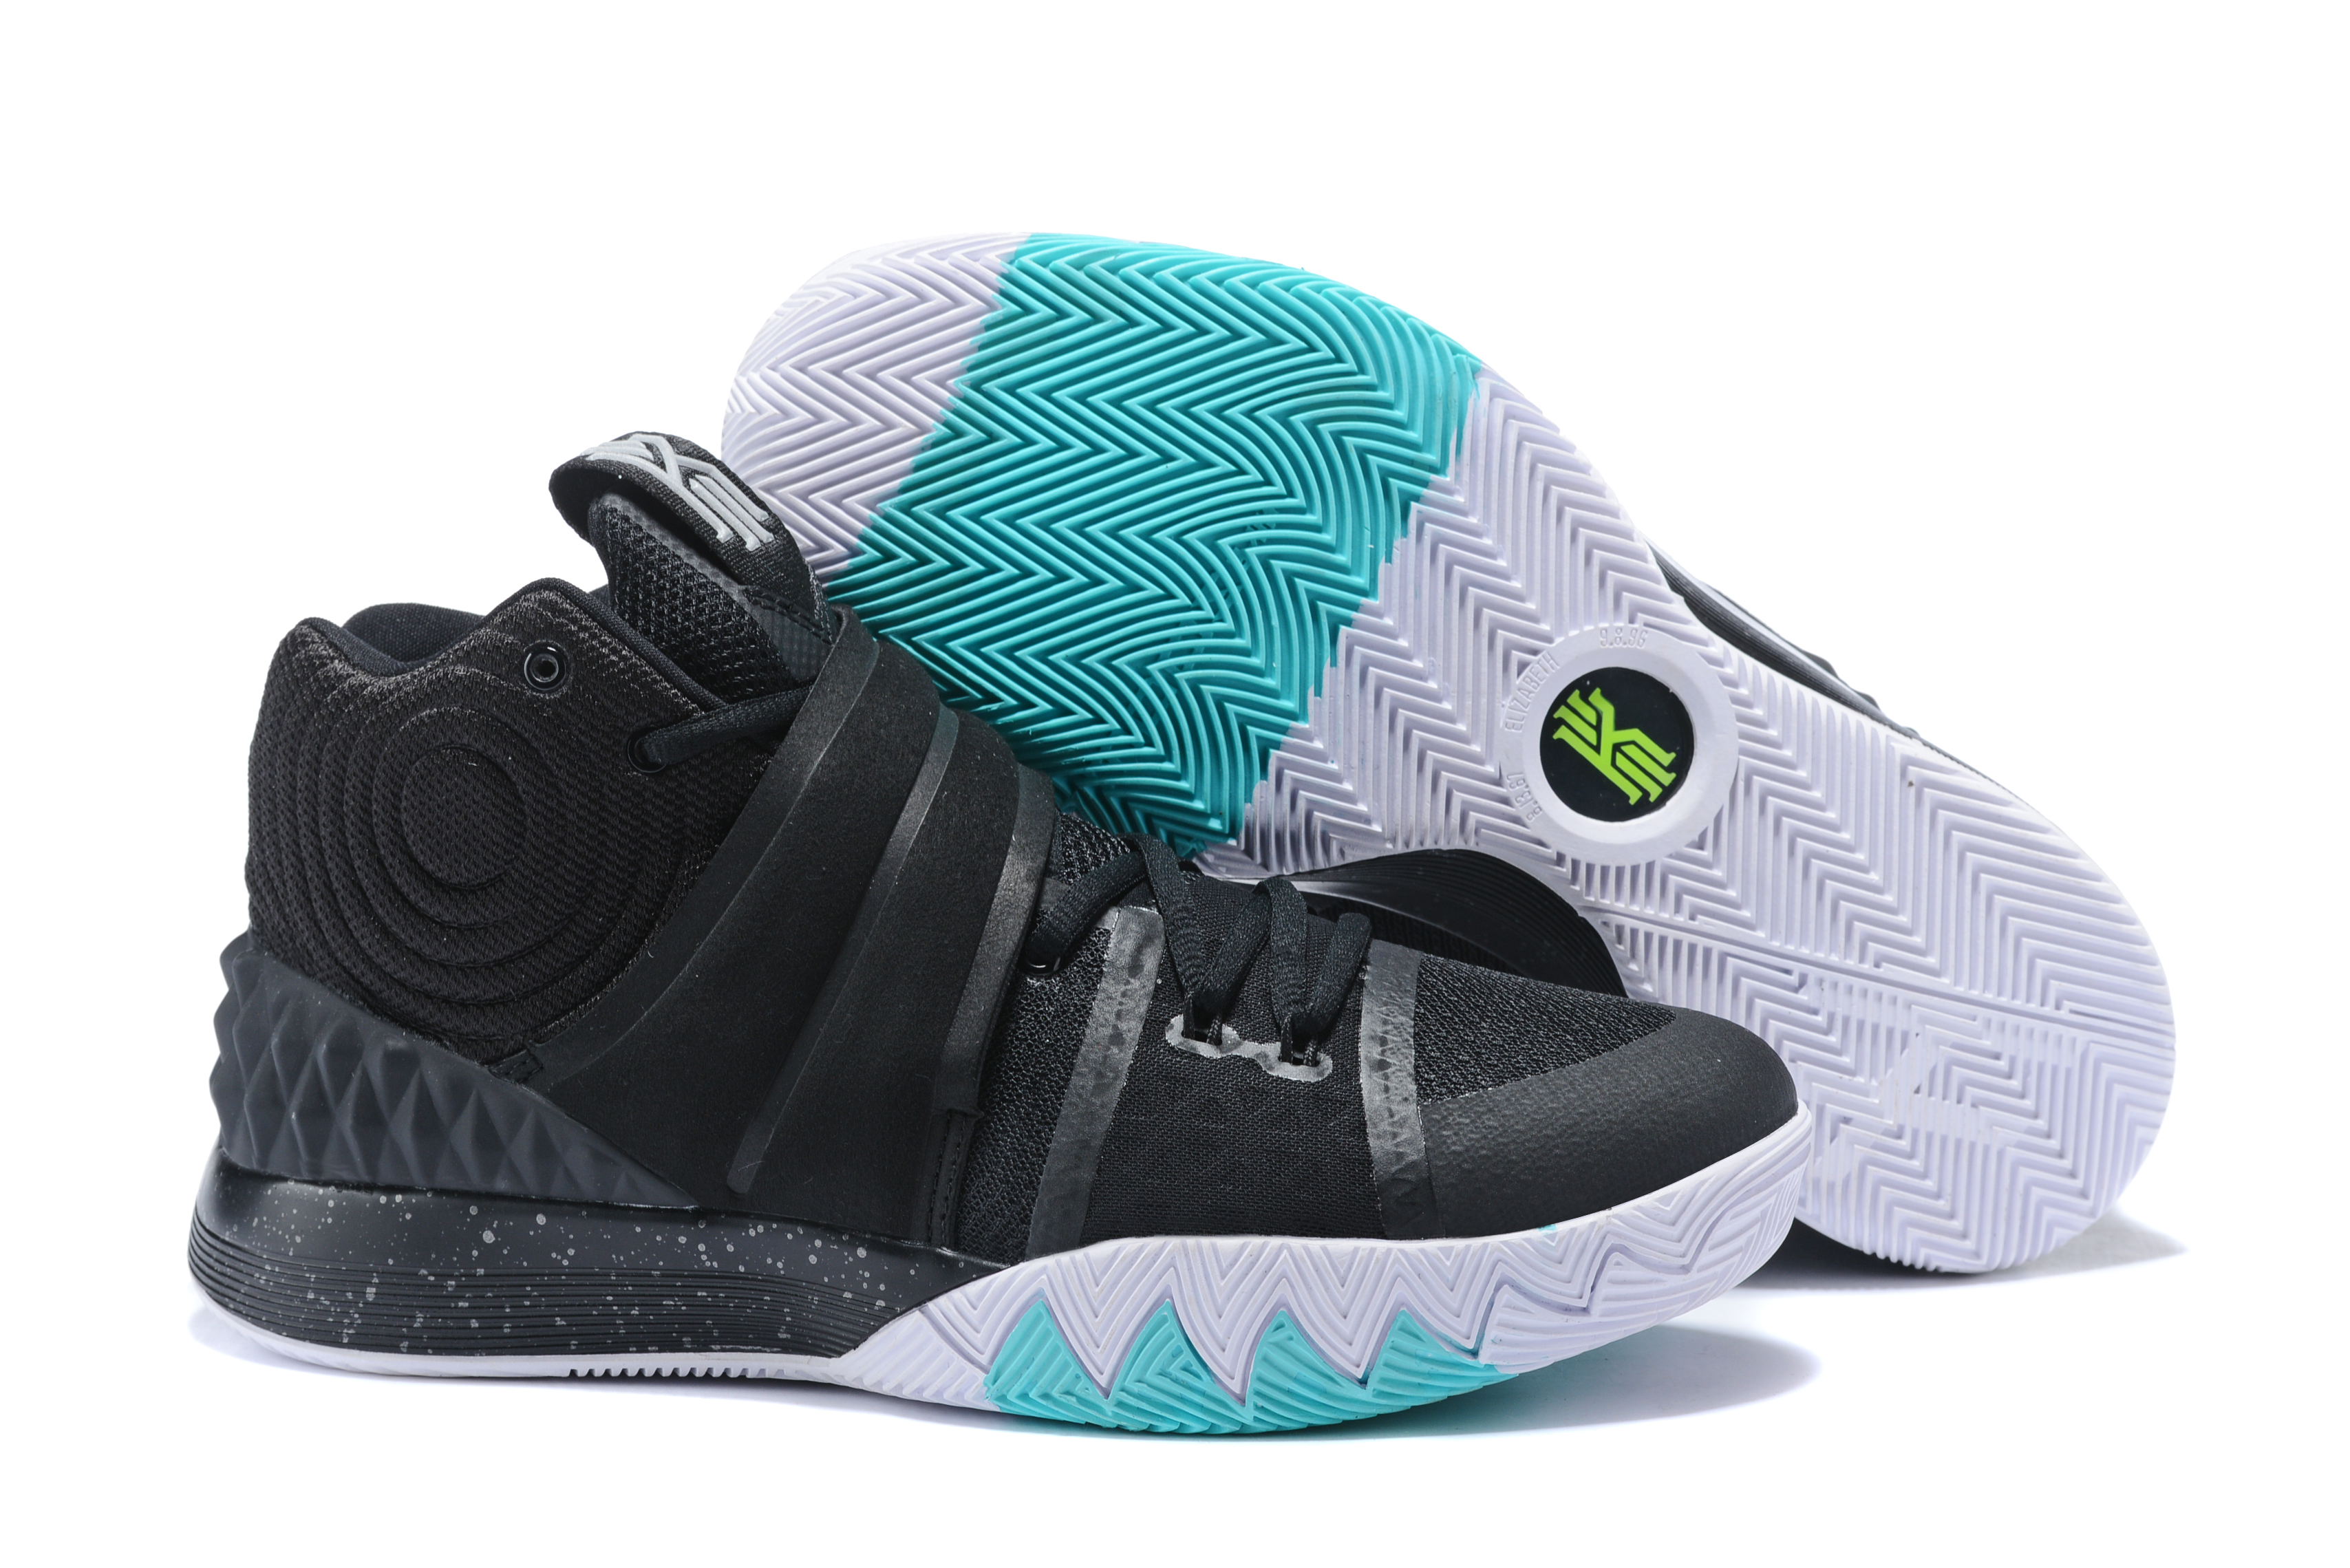 Nike Kyrie S1HYBRID Black White Jade Shoes